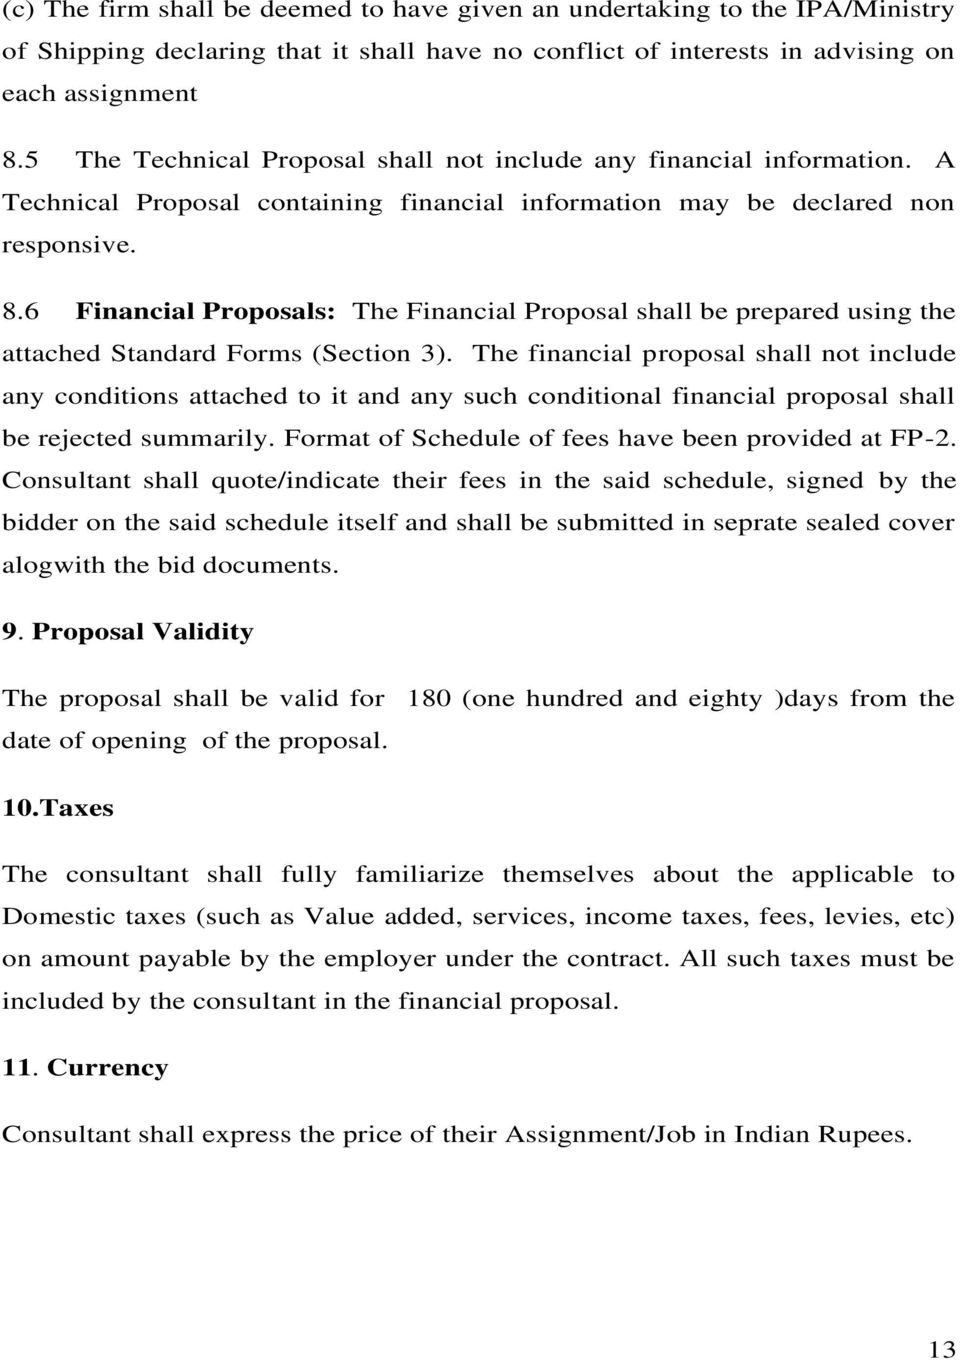 6 Financial Proposals: The Financial Proposal shall be prepared using the attached Standard Forms (Section 3).